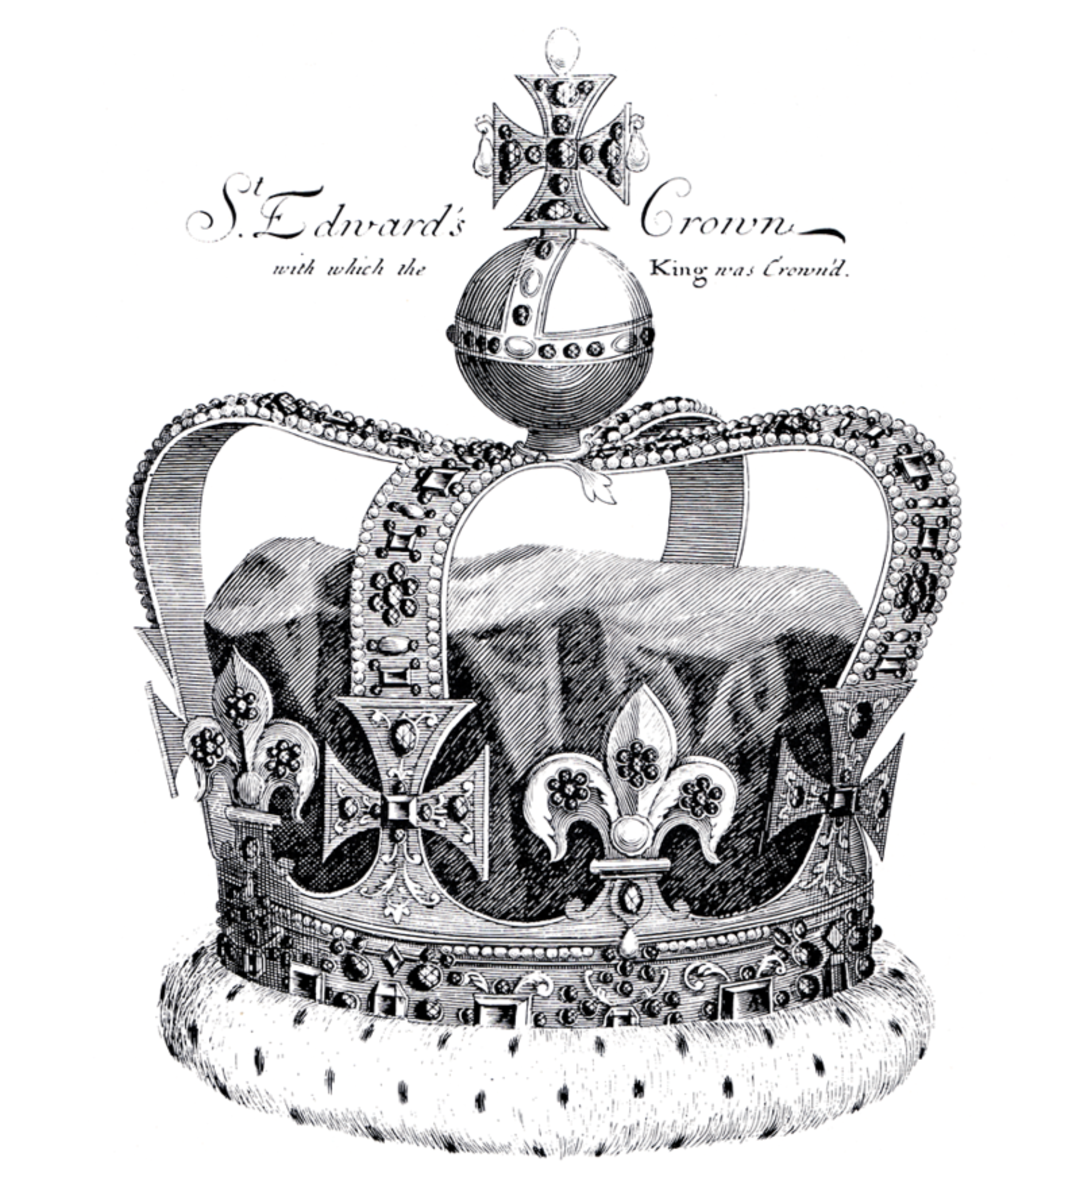 St. Edward's Crown after repairs, was used for the 1689 coronation of James II, Charles II's younger brother.